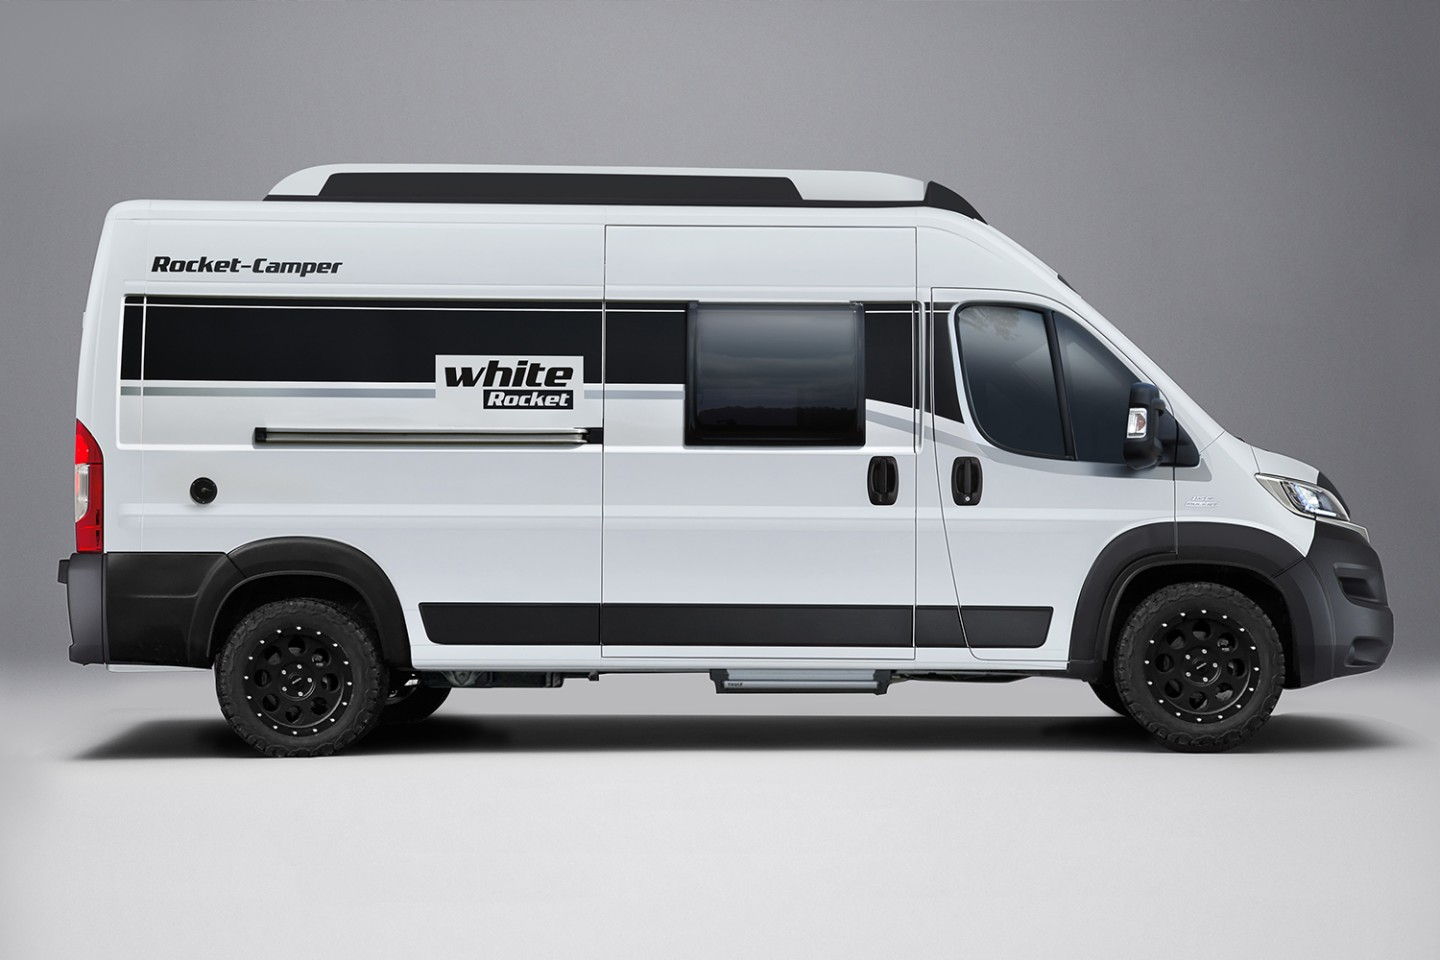 The White Rocket includes the Rocket Roof and the Rocket Mountain Package with suspension lift and upgraded wheels/all-terrain tires